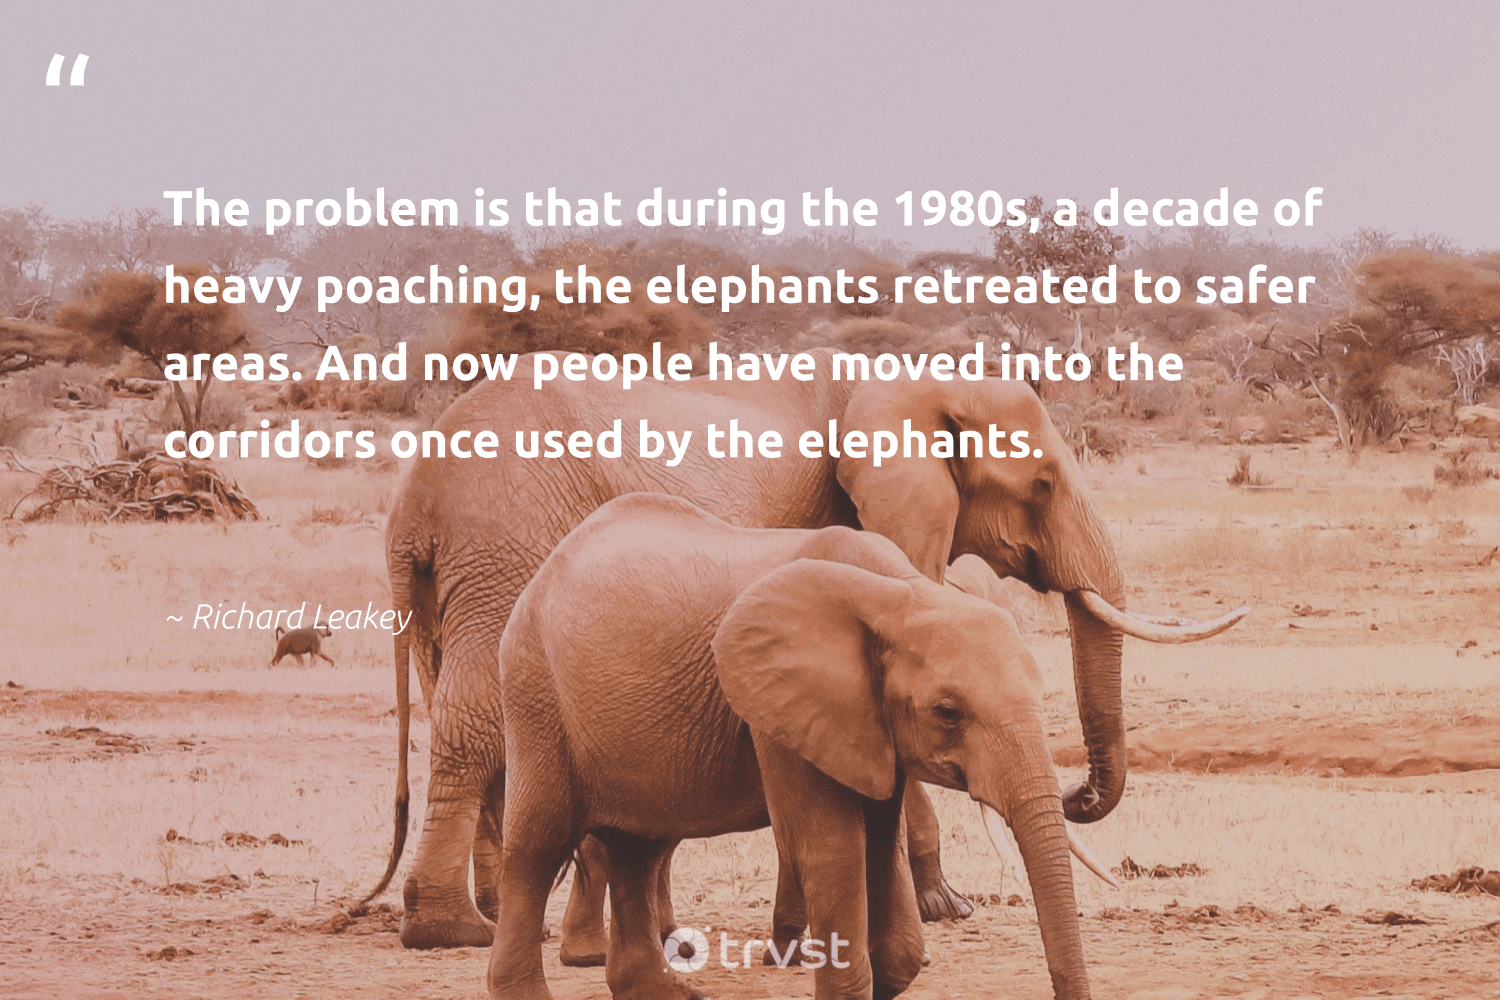 """""""The problem is that during the 1980s, a decade of heavy poaching, the elephants retreated to safer areas. And now people have moved into the corridors once used by the elephants.""""  - Richard Leakey #trvst #quotes #elephants #mammals #dotherightthing #wildlife #dogood #elephant #socialimpact #elephantlover #beinspired #endangered"""